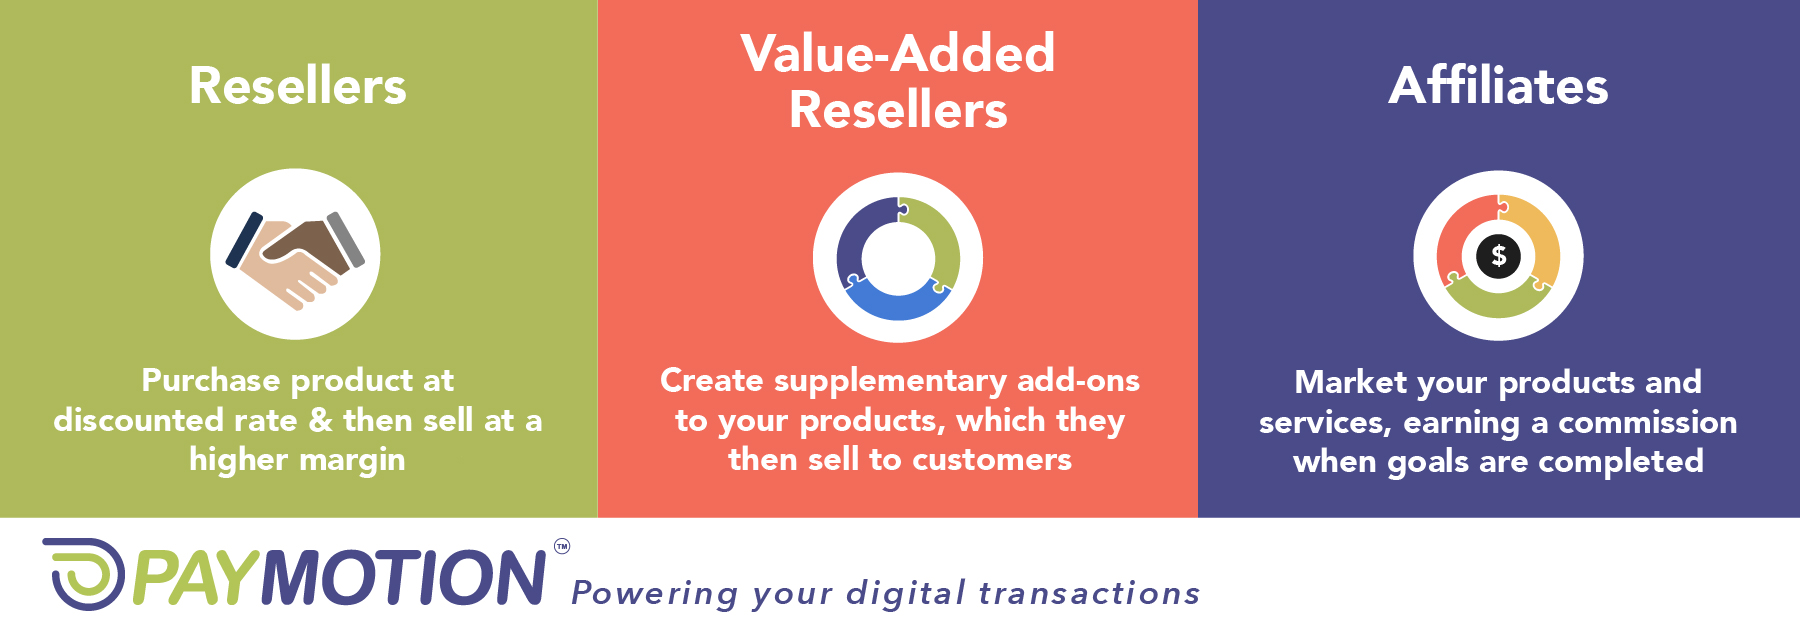 PayMotion Channel Partners. Resellers, value added resellers and Affiliates